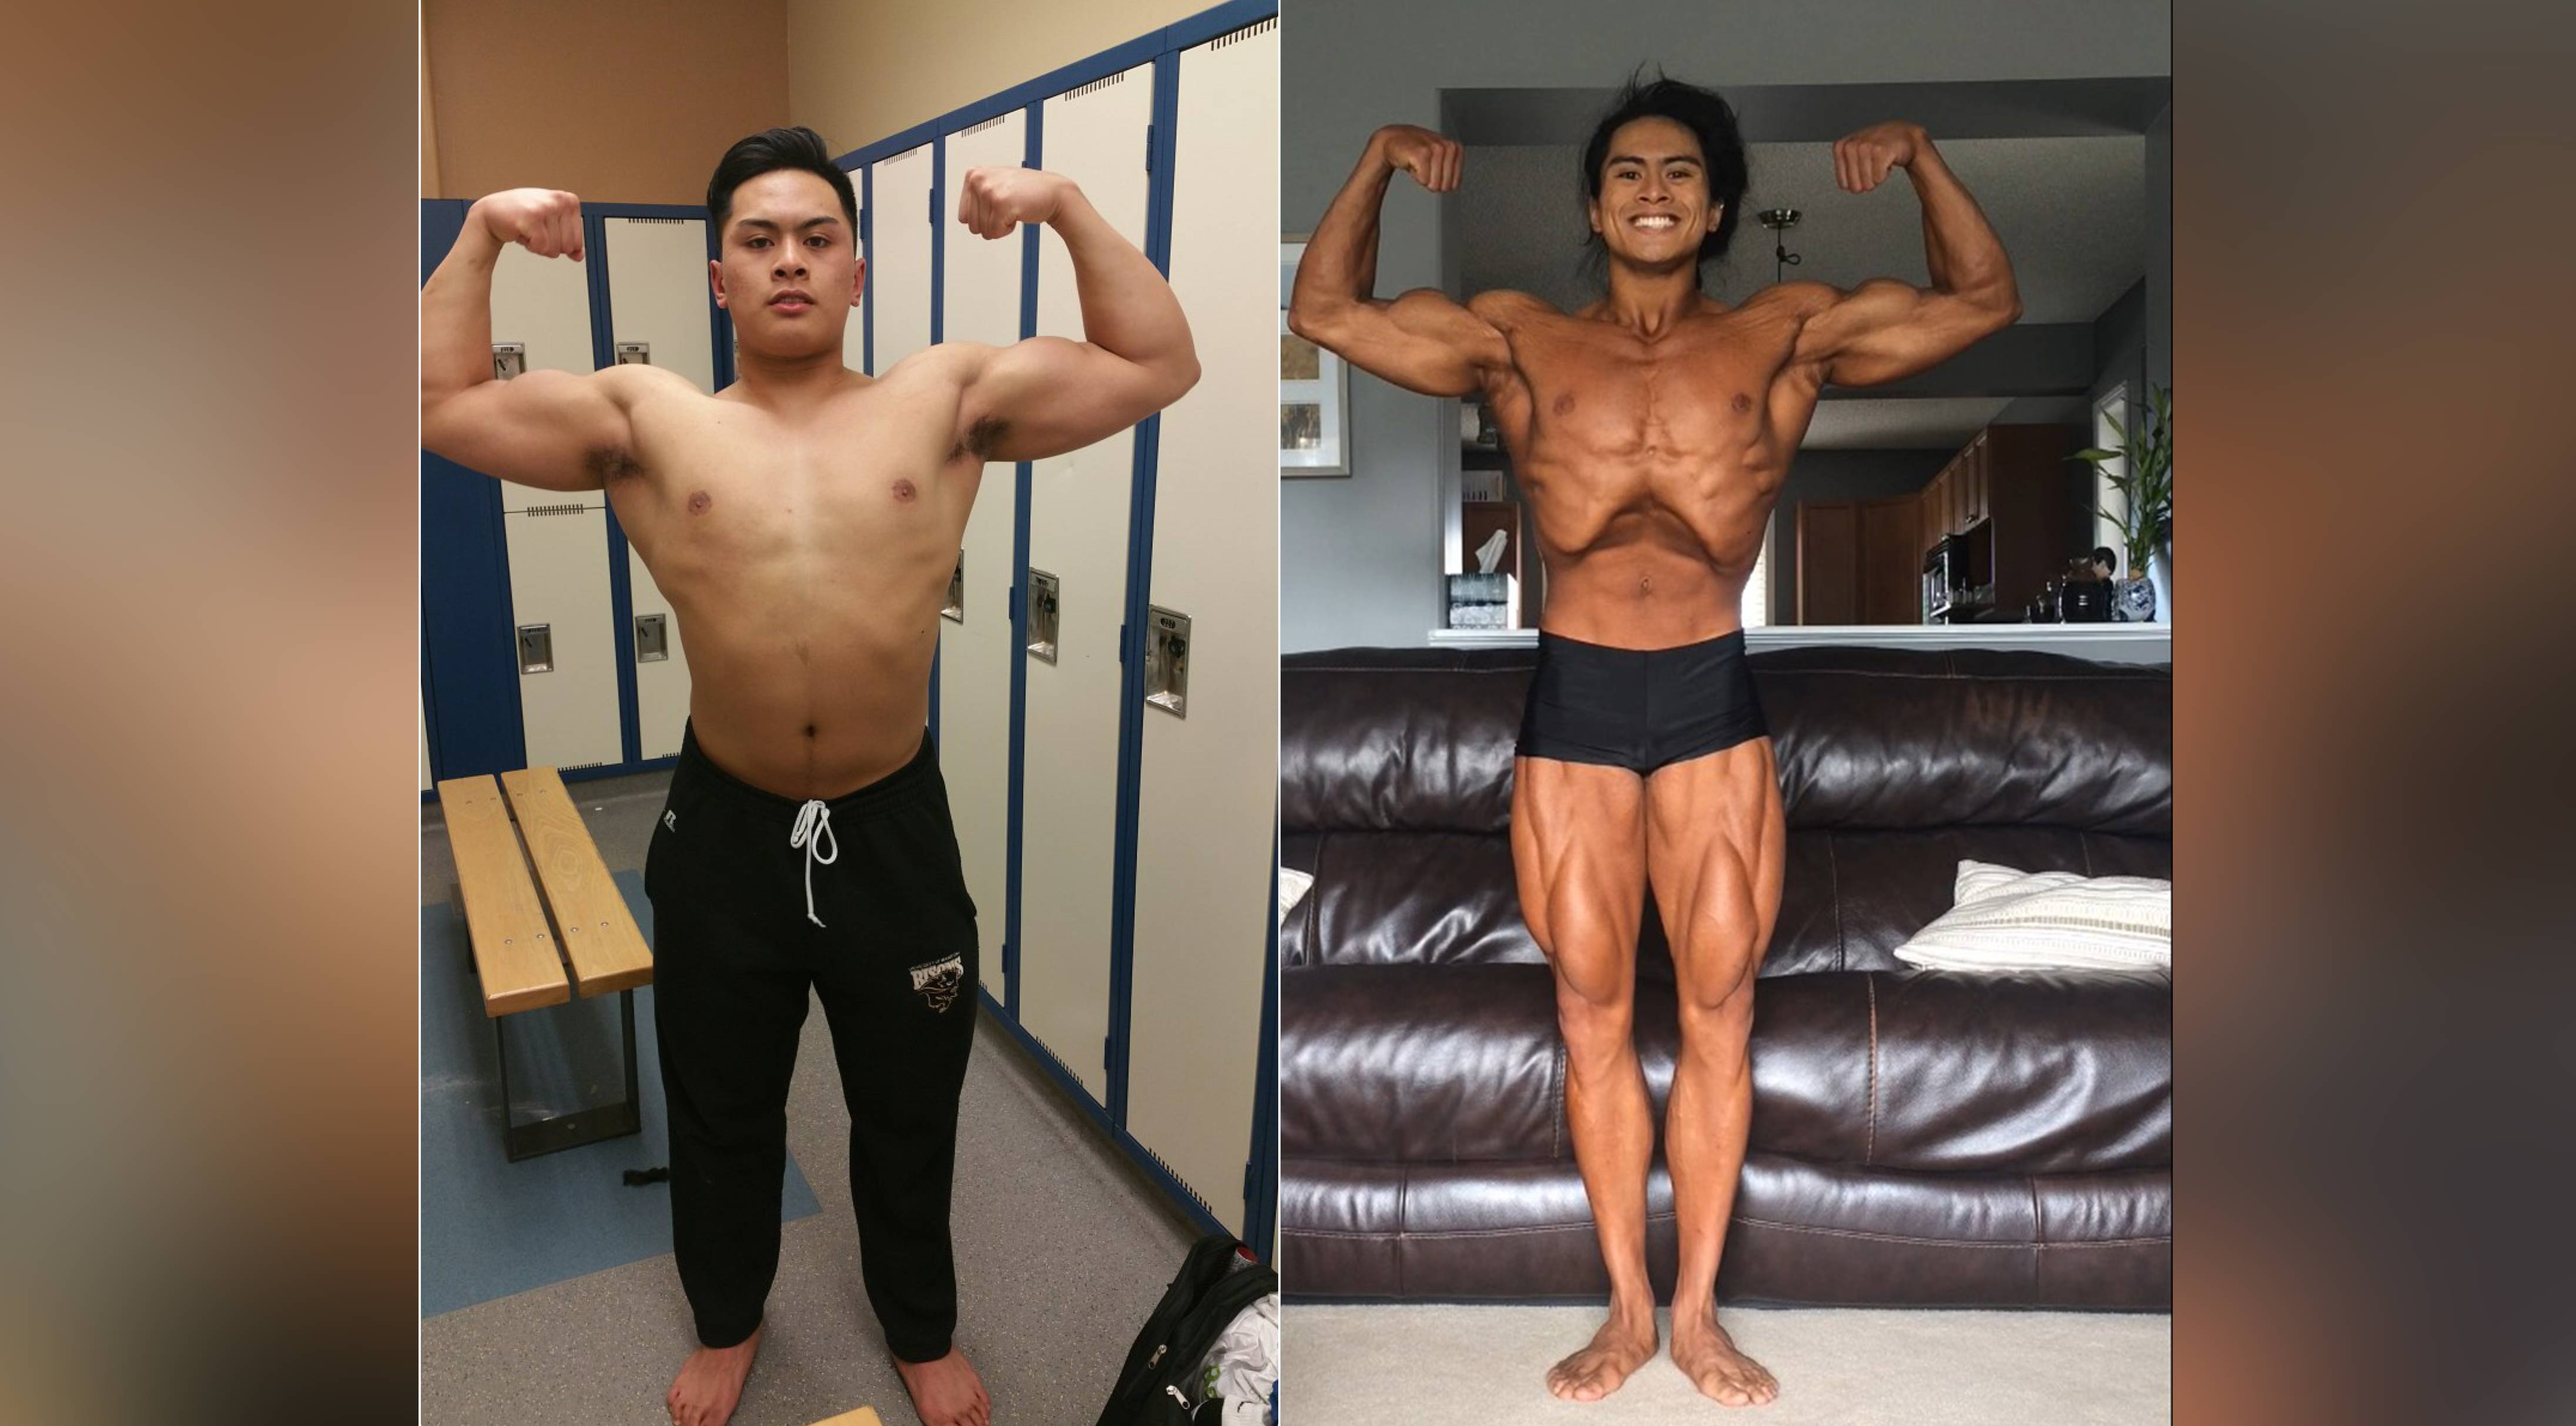 How Ivan Lumbera Transformed From an Average Guy Into a National-level Bodybuilder